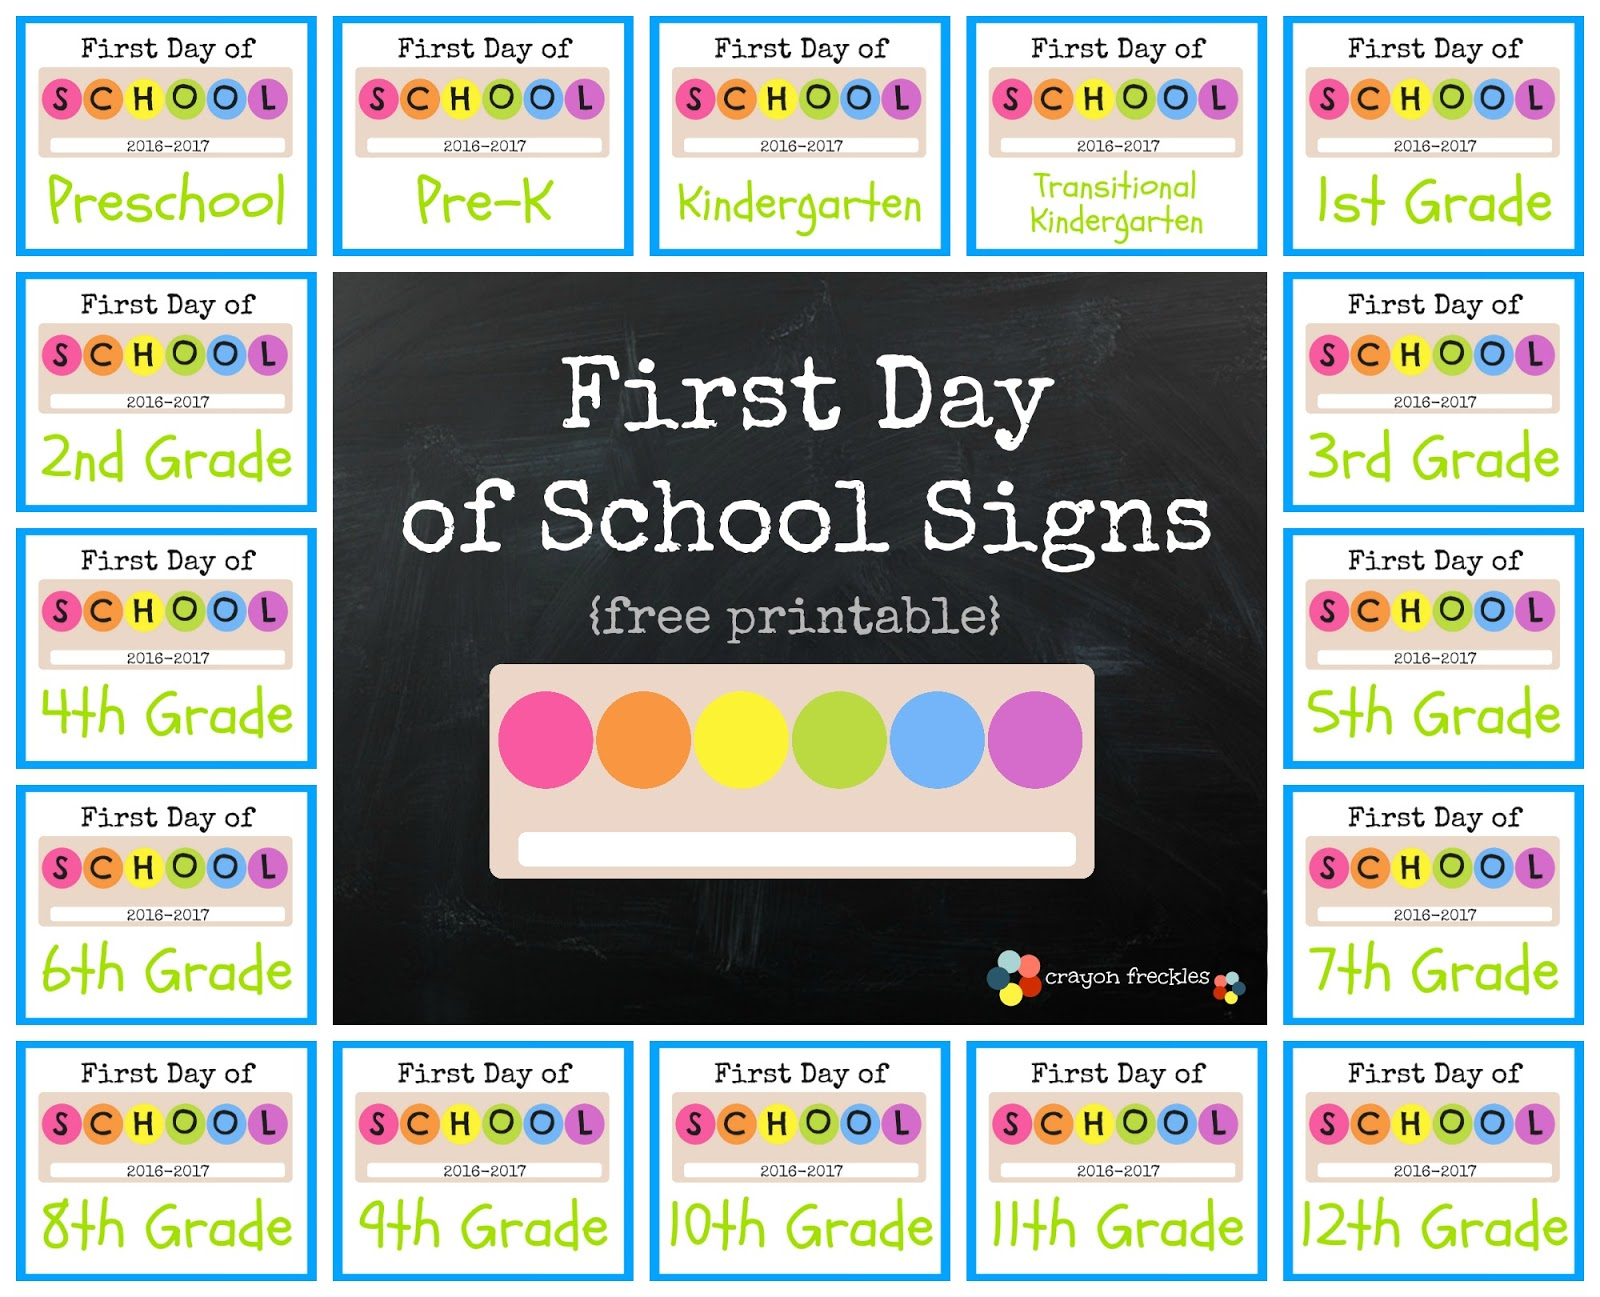 Crayon Freckles: First Day Of School Signs {Free Printable} - Free Printable First Day Of School Signs